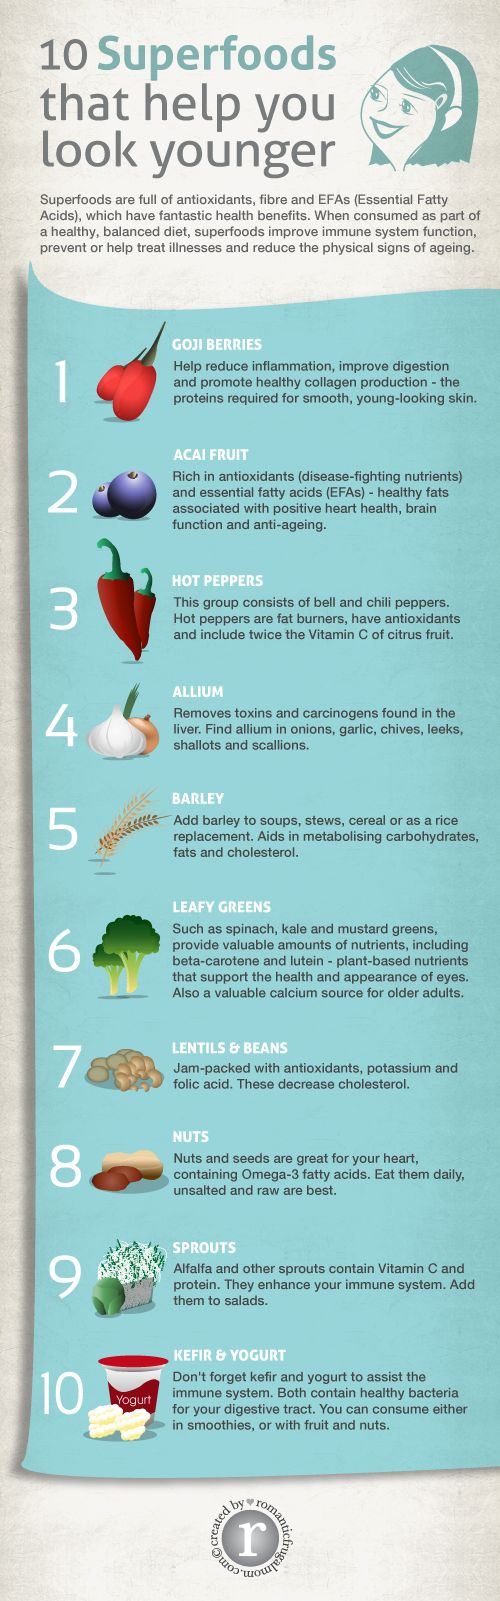 10 Superfoods for a Healthy Life #10 #Superfoods #Healthy #Life #Infographicsq